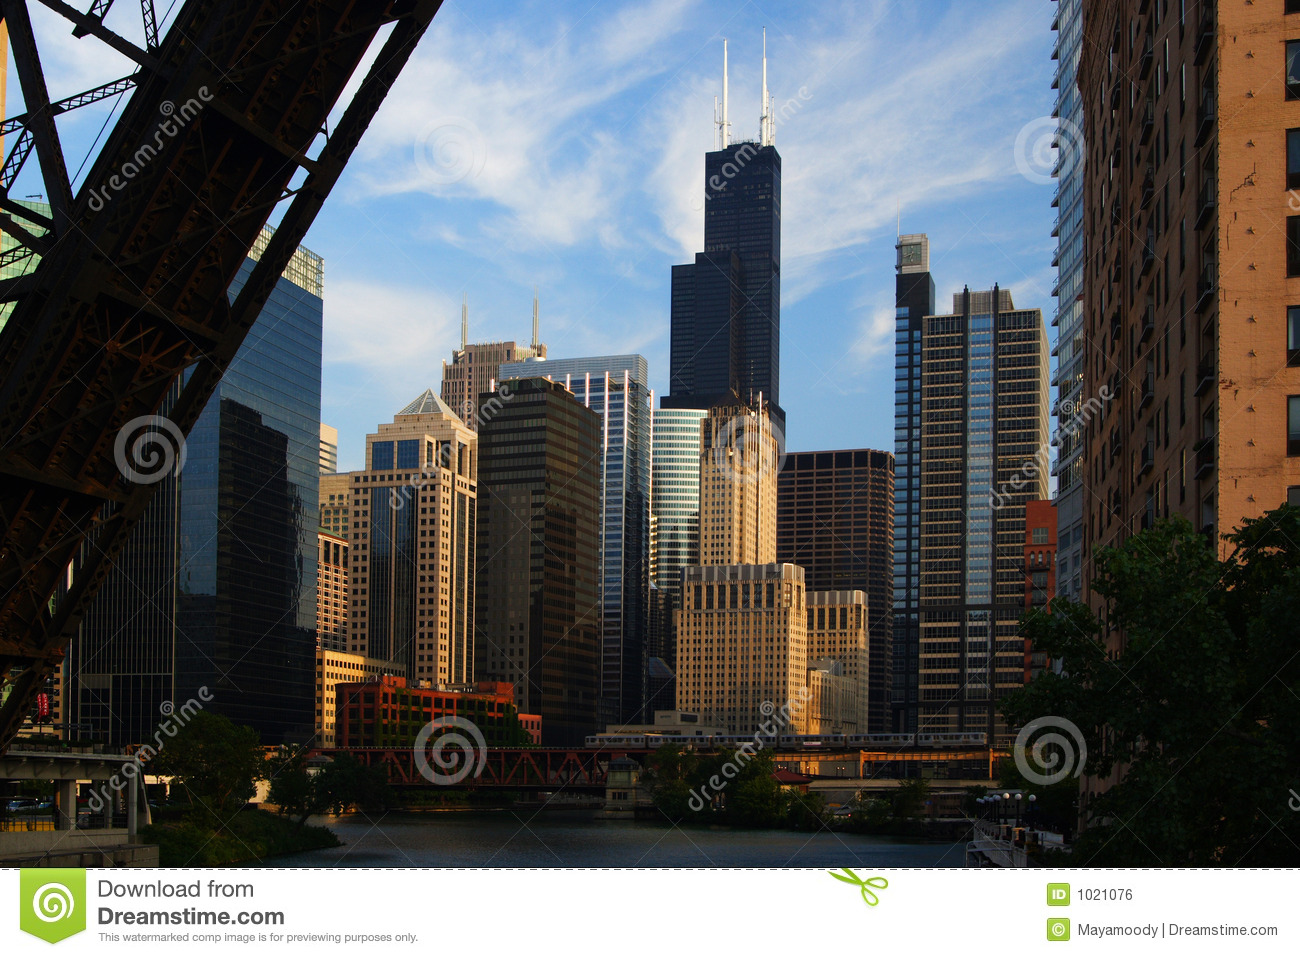 De stadsmening van Chicago